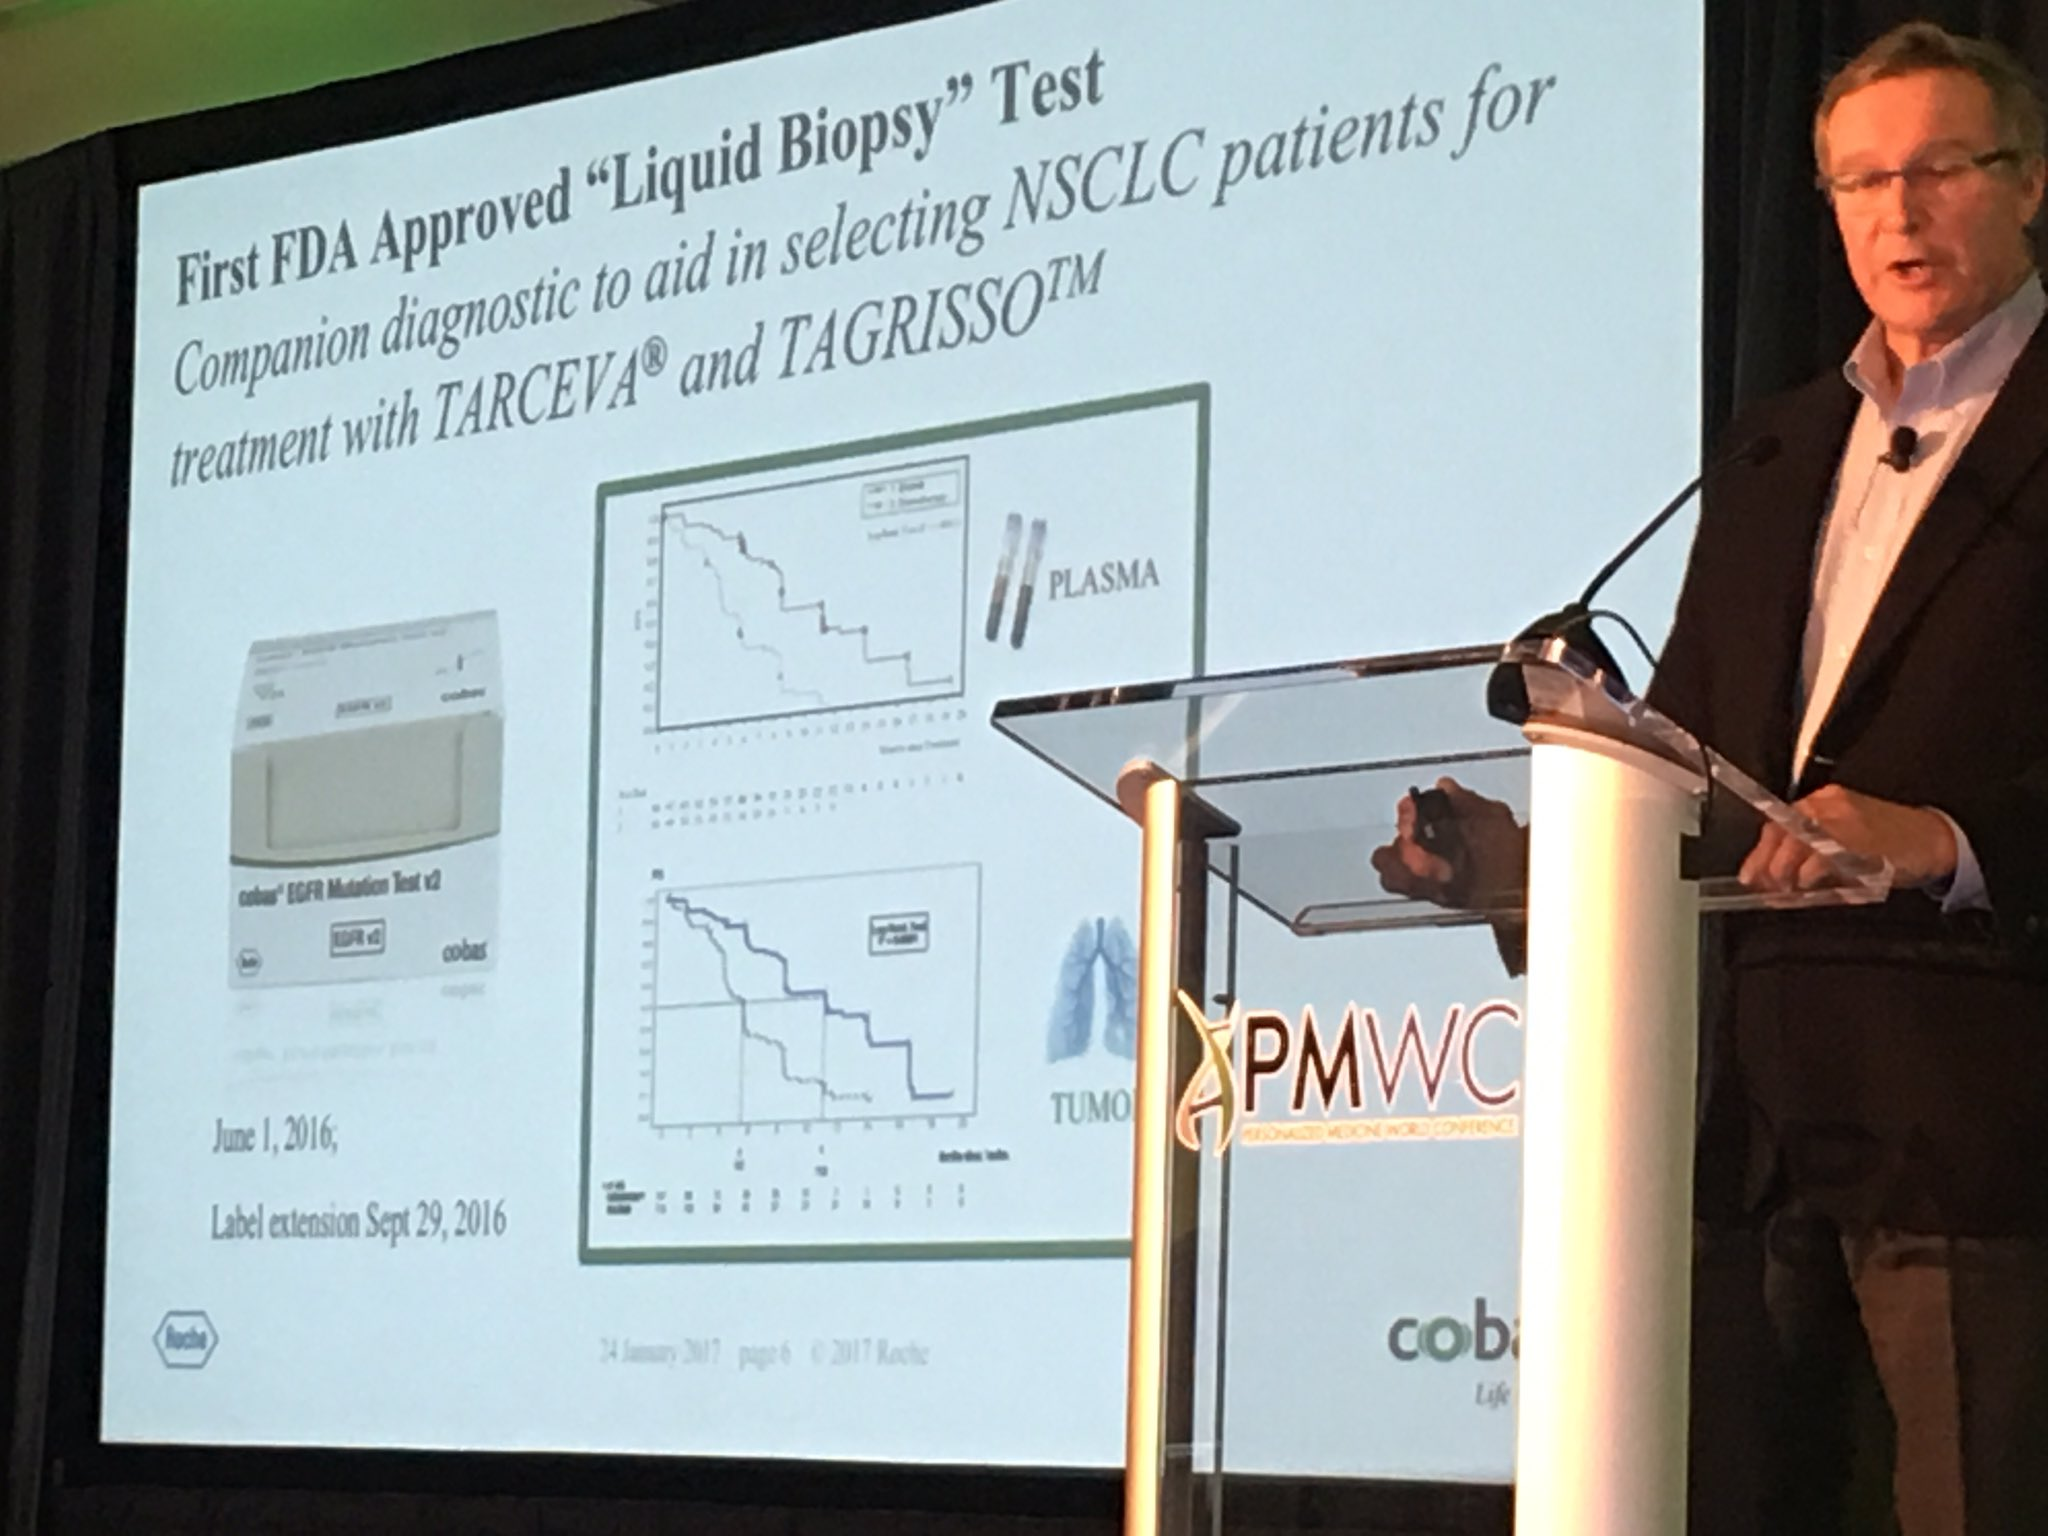 Listening to discussions about bringing #LiquidBiopsy to the clinic at Precision Medicine #PMWC17 World Conference! https://t.co/iAUvaaGtqF